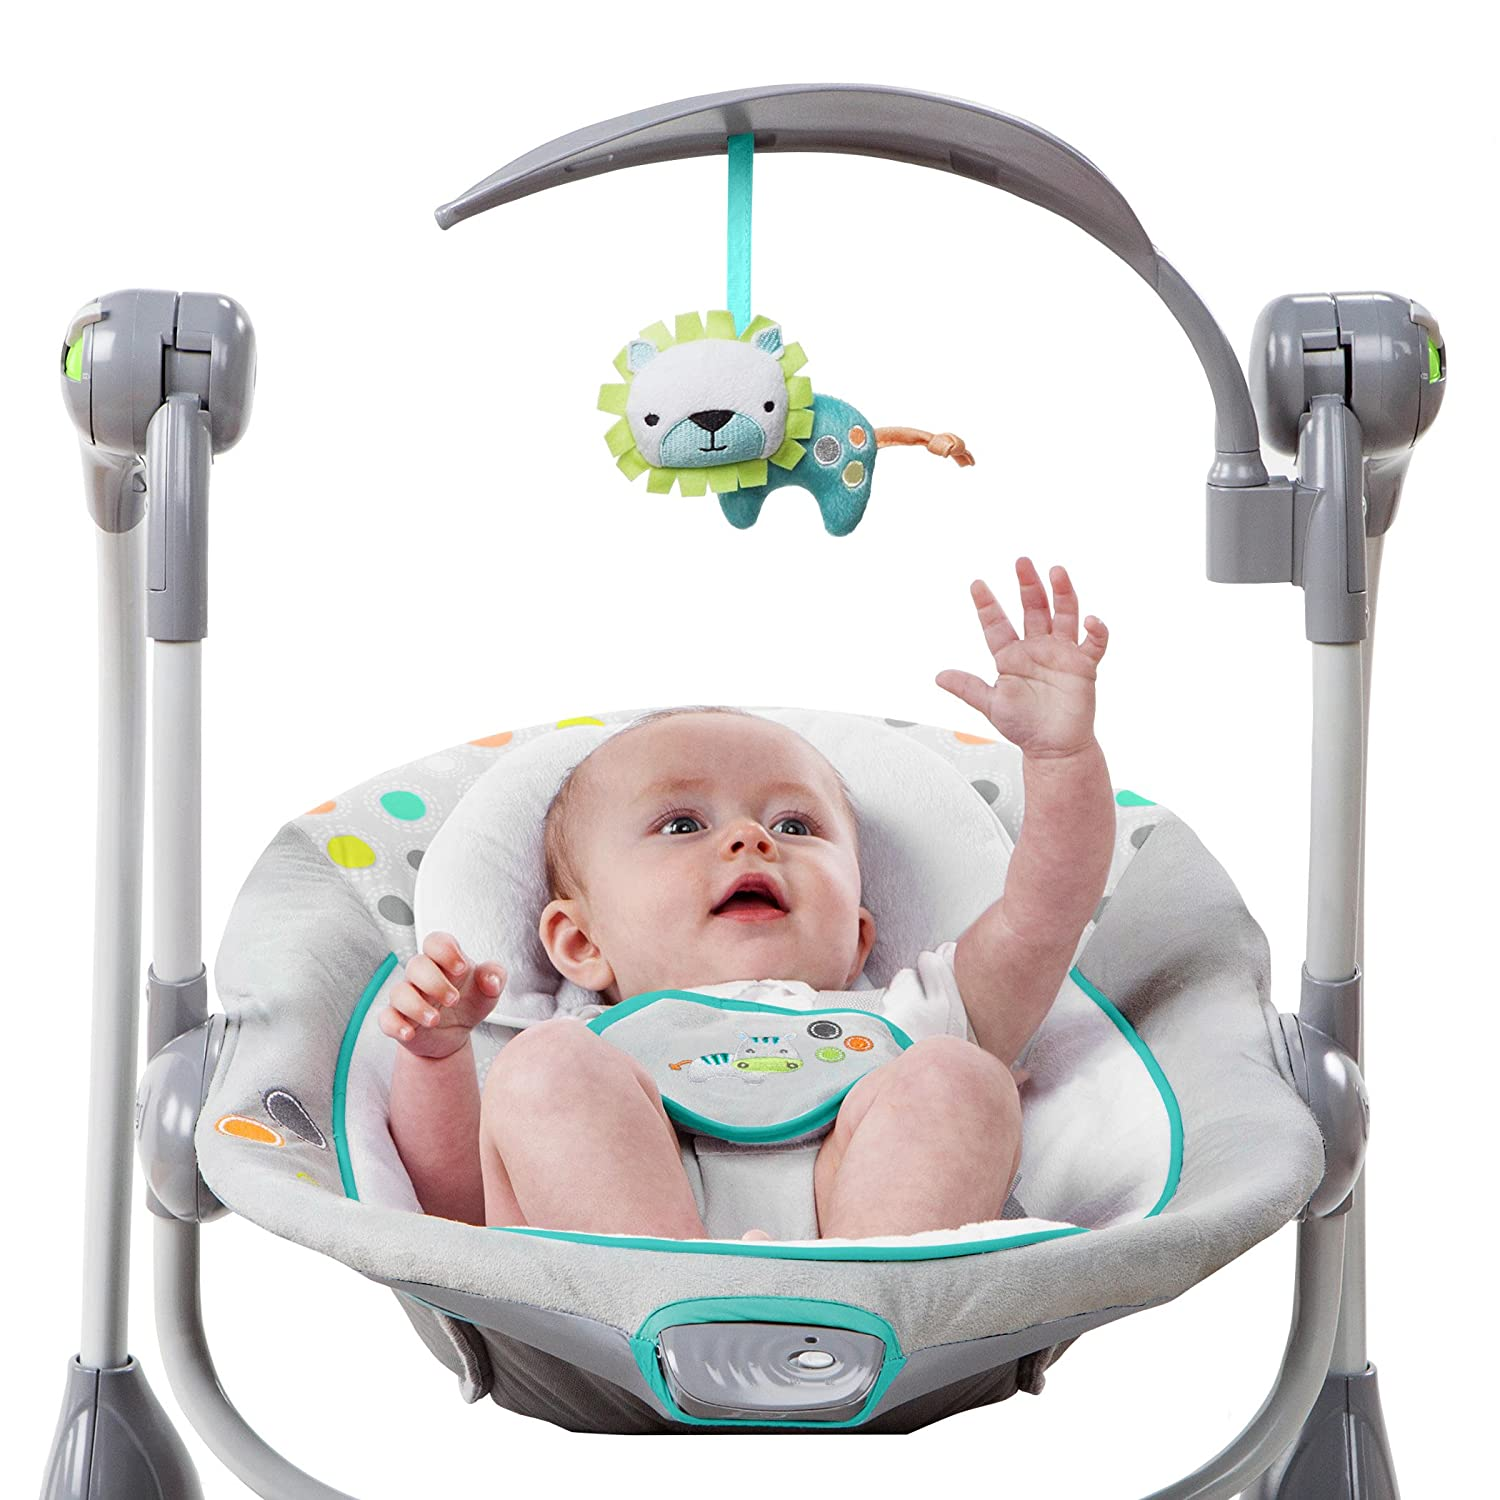 81UDCGBZcVL. SL1500 The Best Baby Swings for Colic 2021 [In-depth-Review]